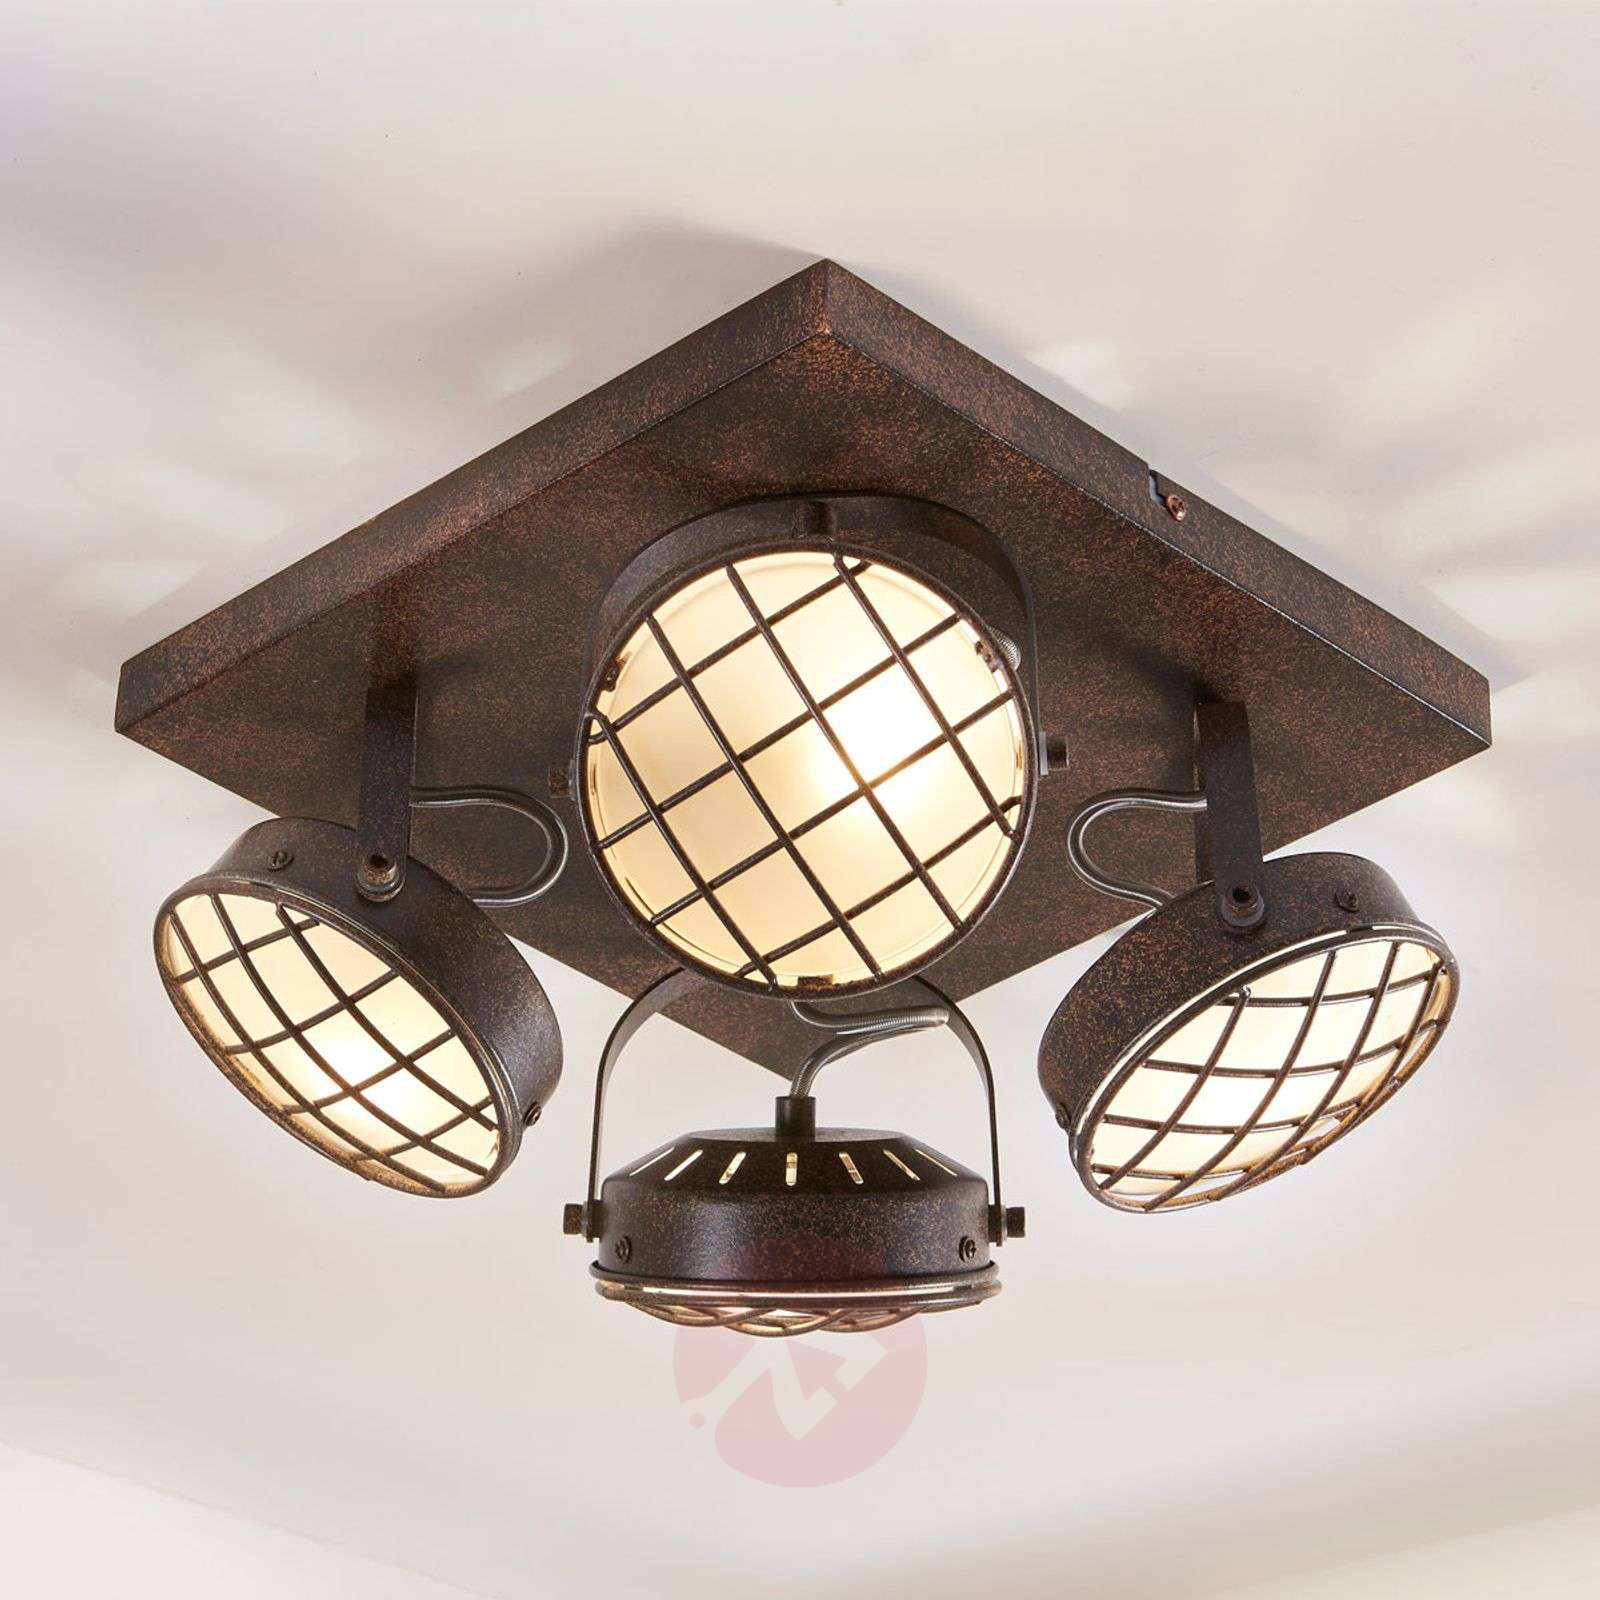 LED Kitchen Ceiling Light Tamin, Rusty Brown